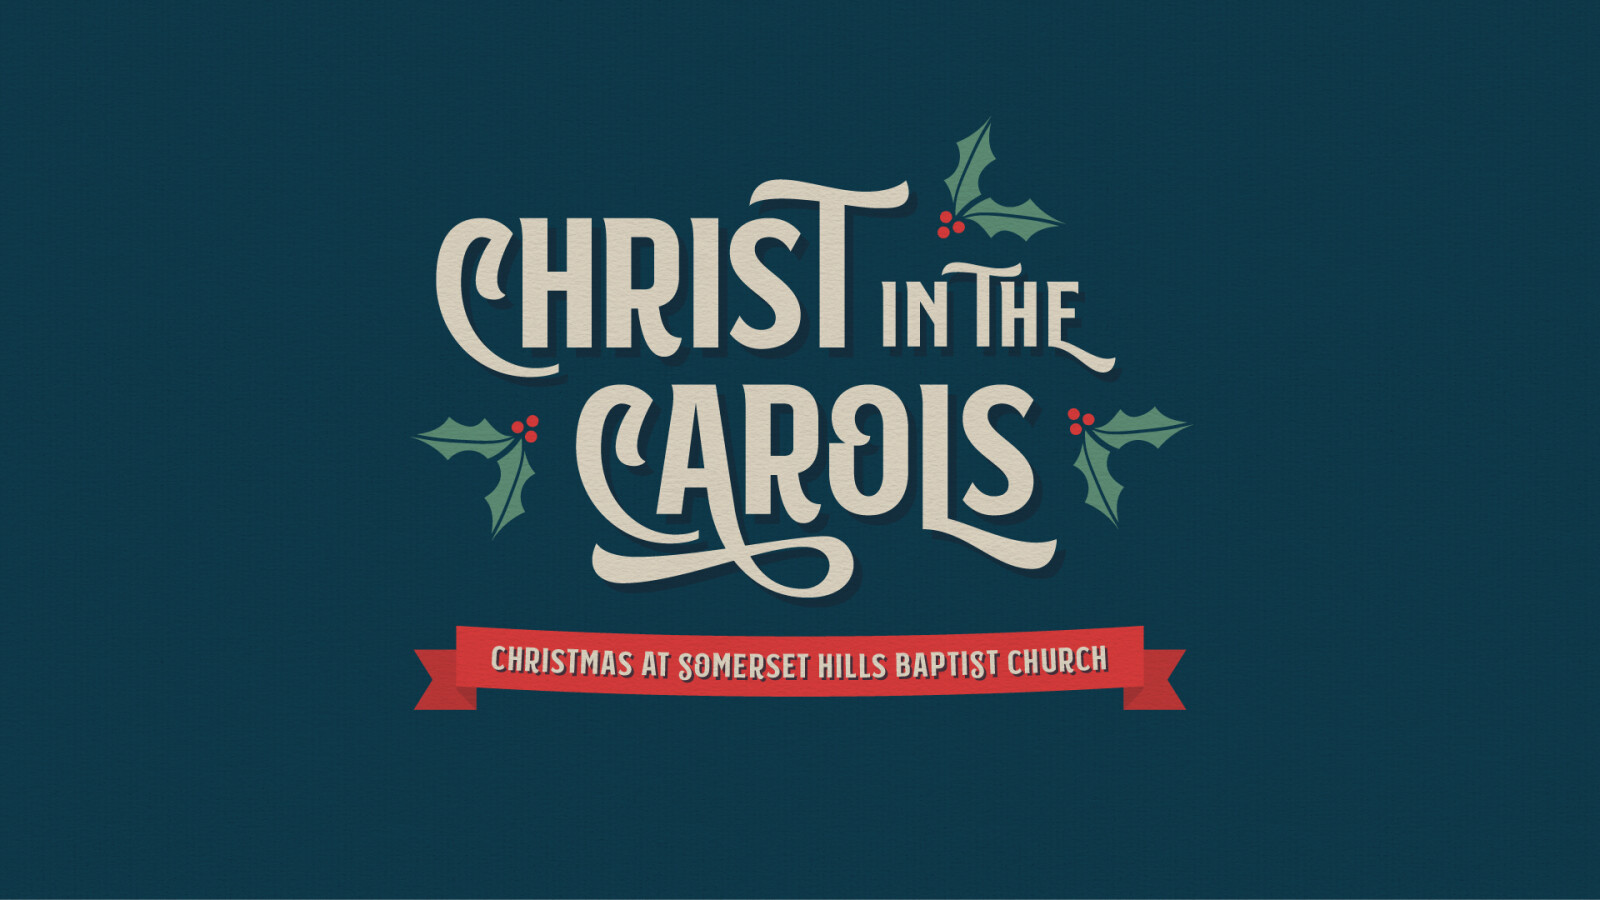 Christ in the Carols